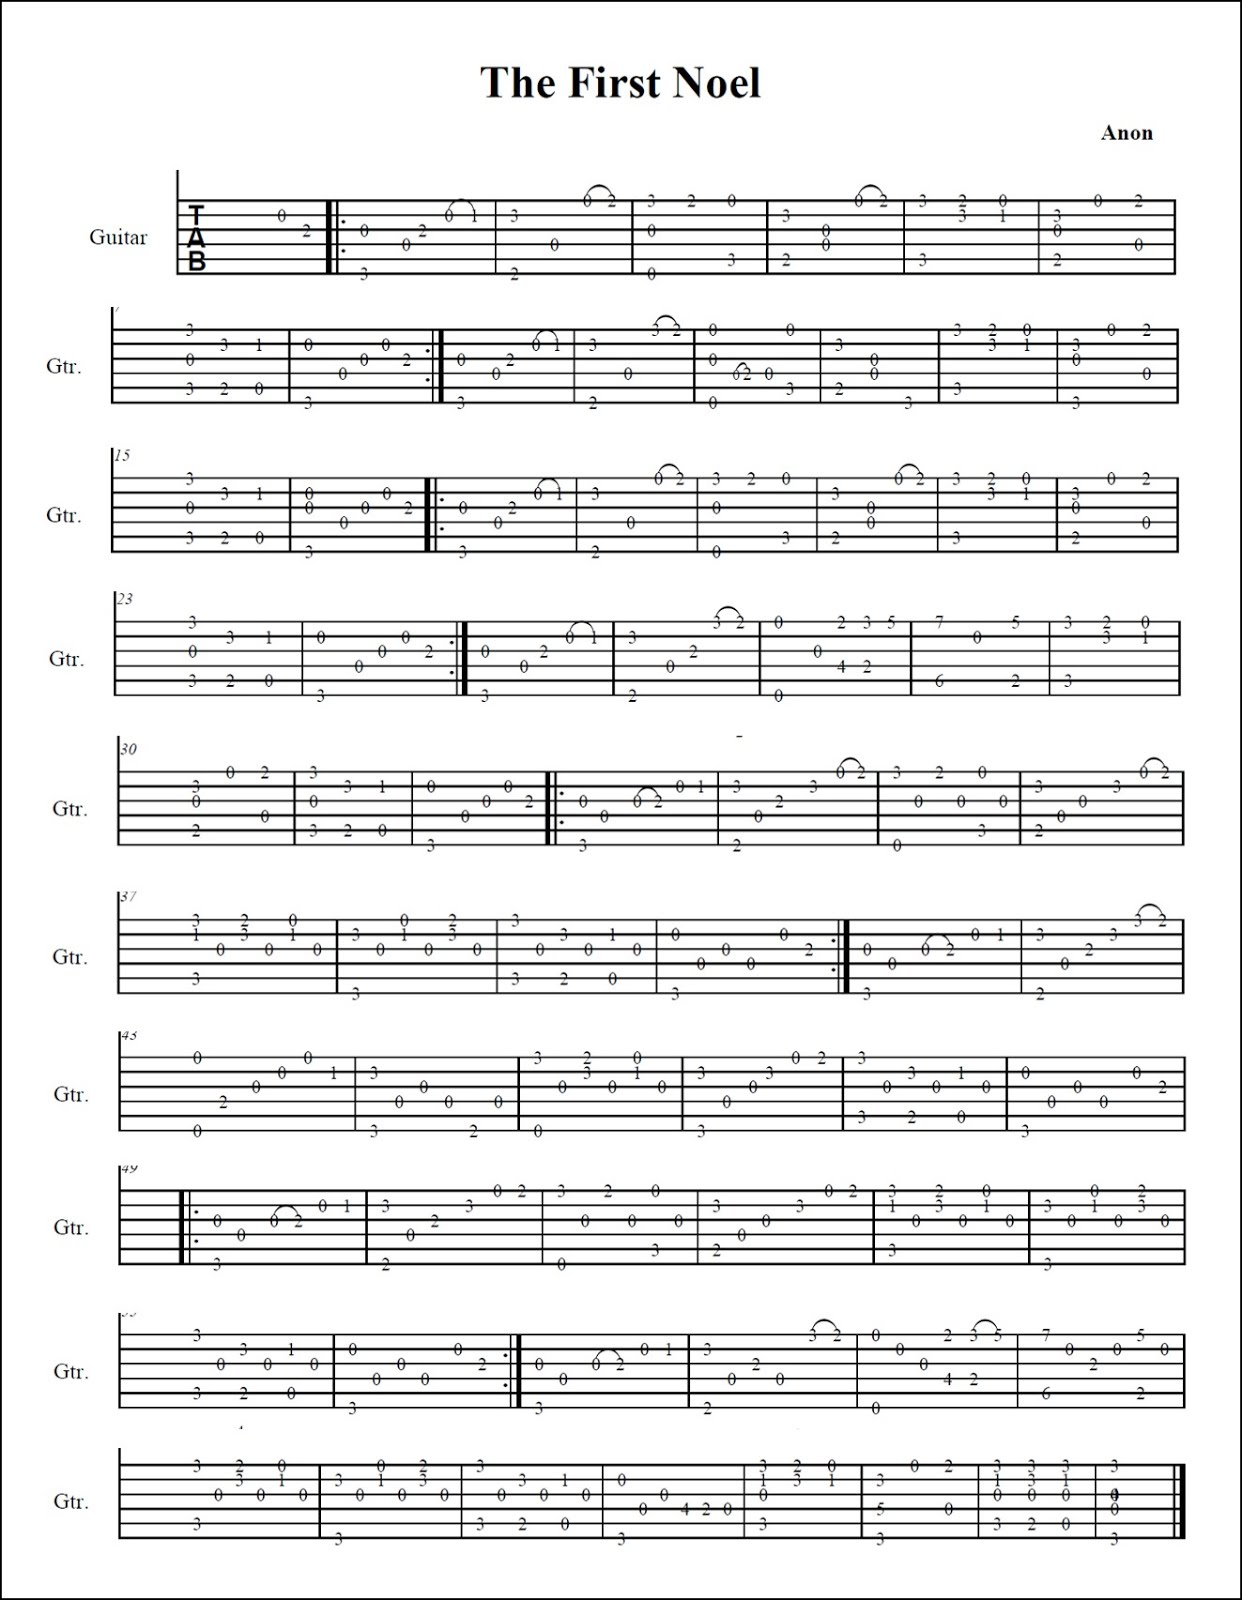 Albela sajan aayo re guitar chords images guitar chords examples guitar chords to silent night images guitar chords examples mattwins free christmas tabs for classical guitar hexwebz Image collections